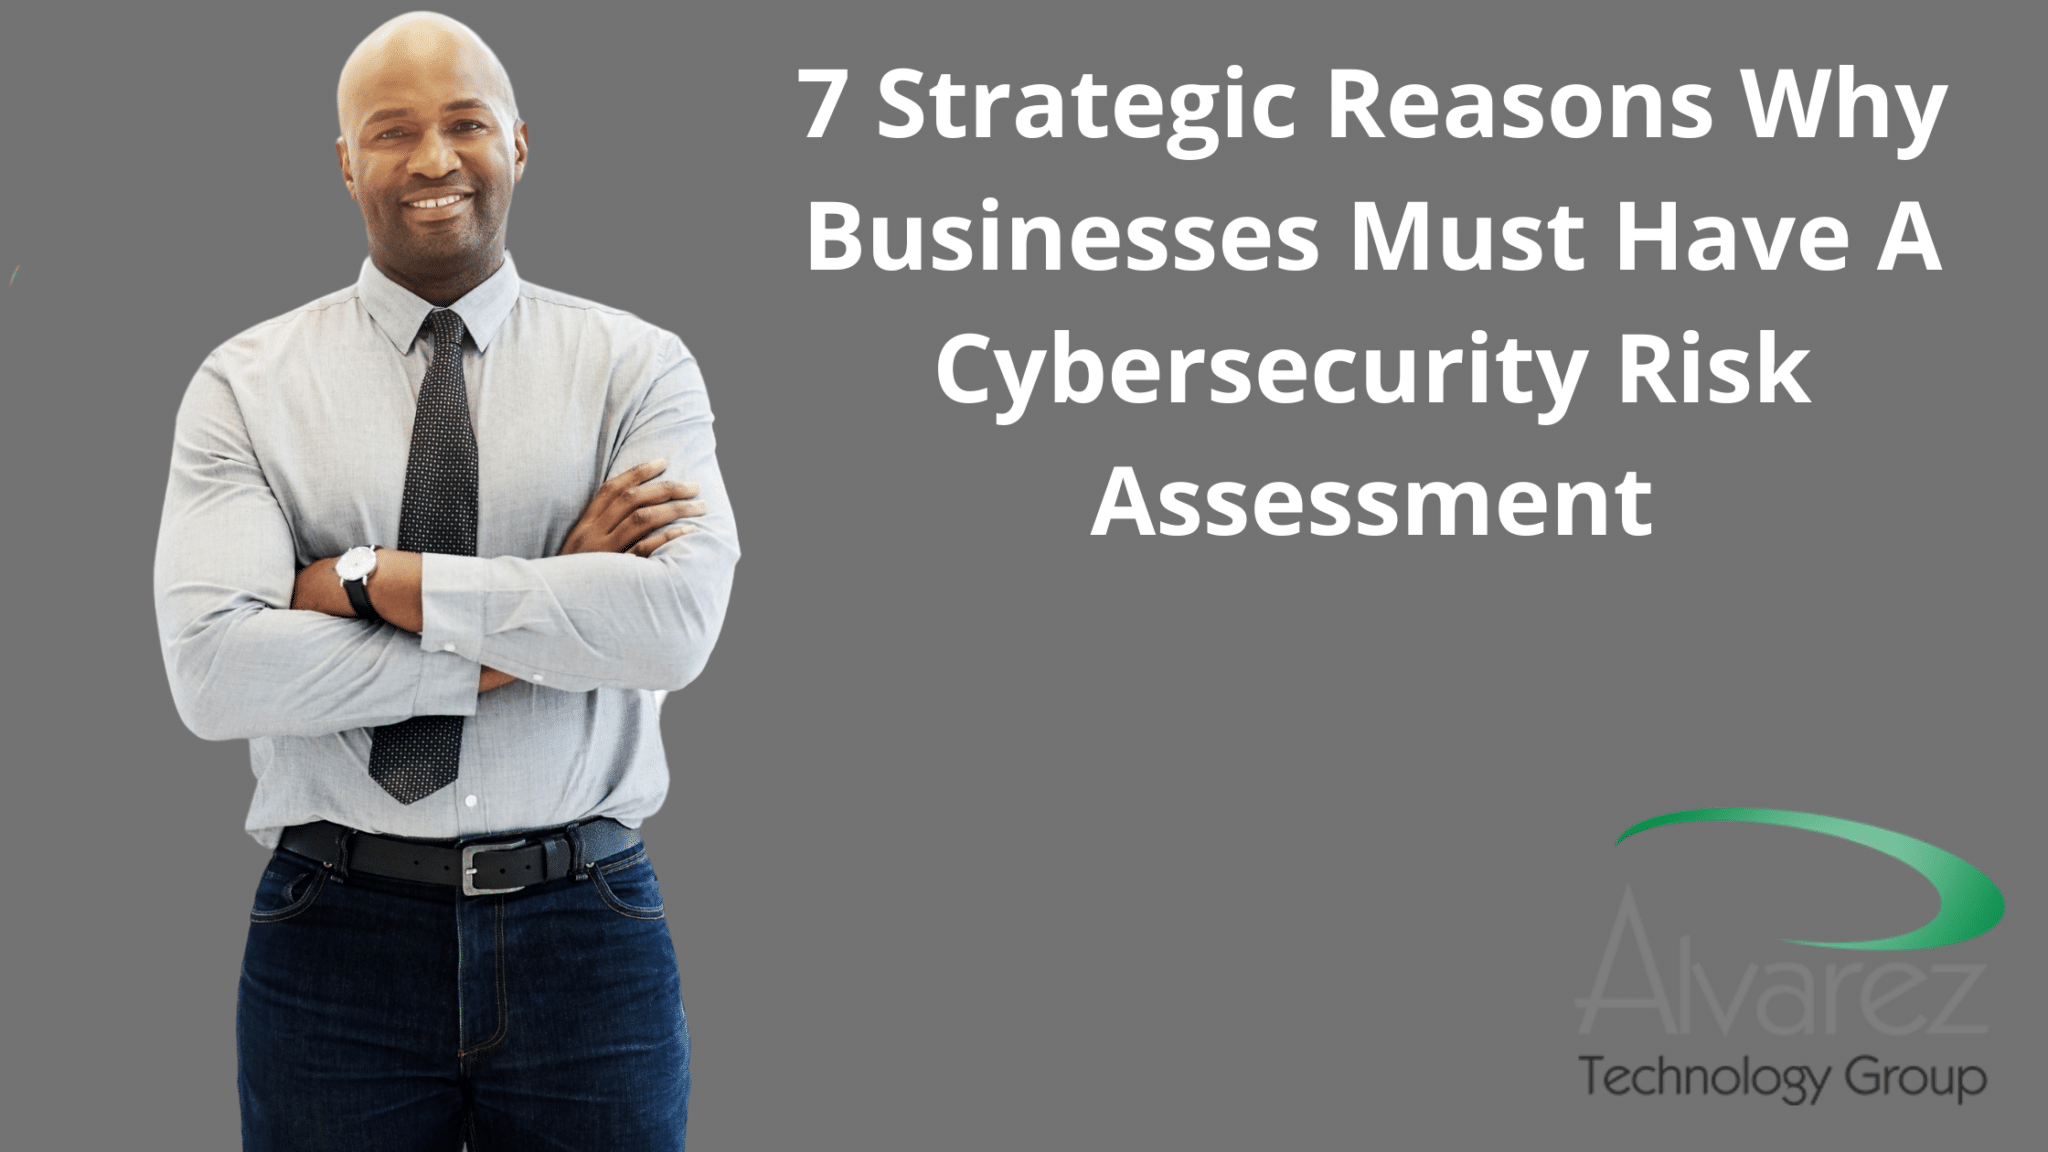 7 Strategic Reasons Why Businesses Must Have A Cybersecurity Risk Assessment